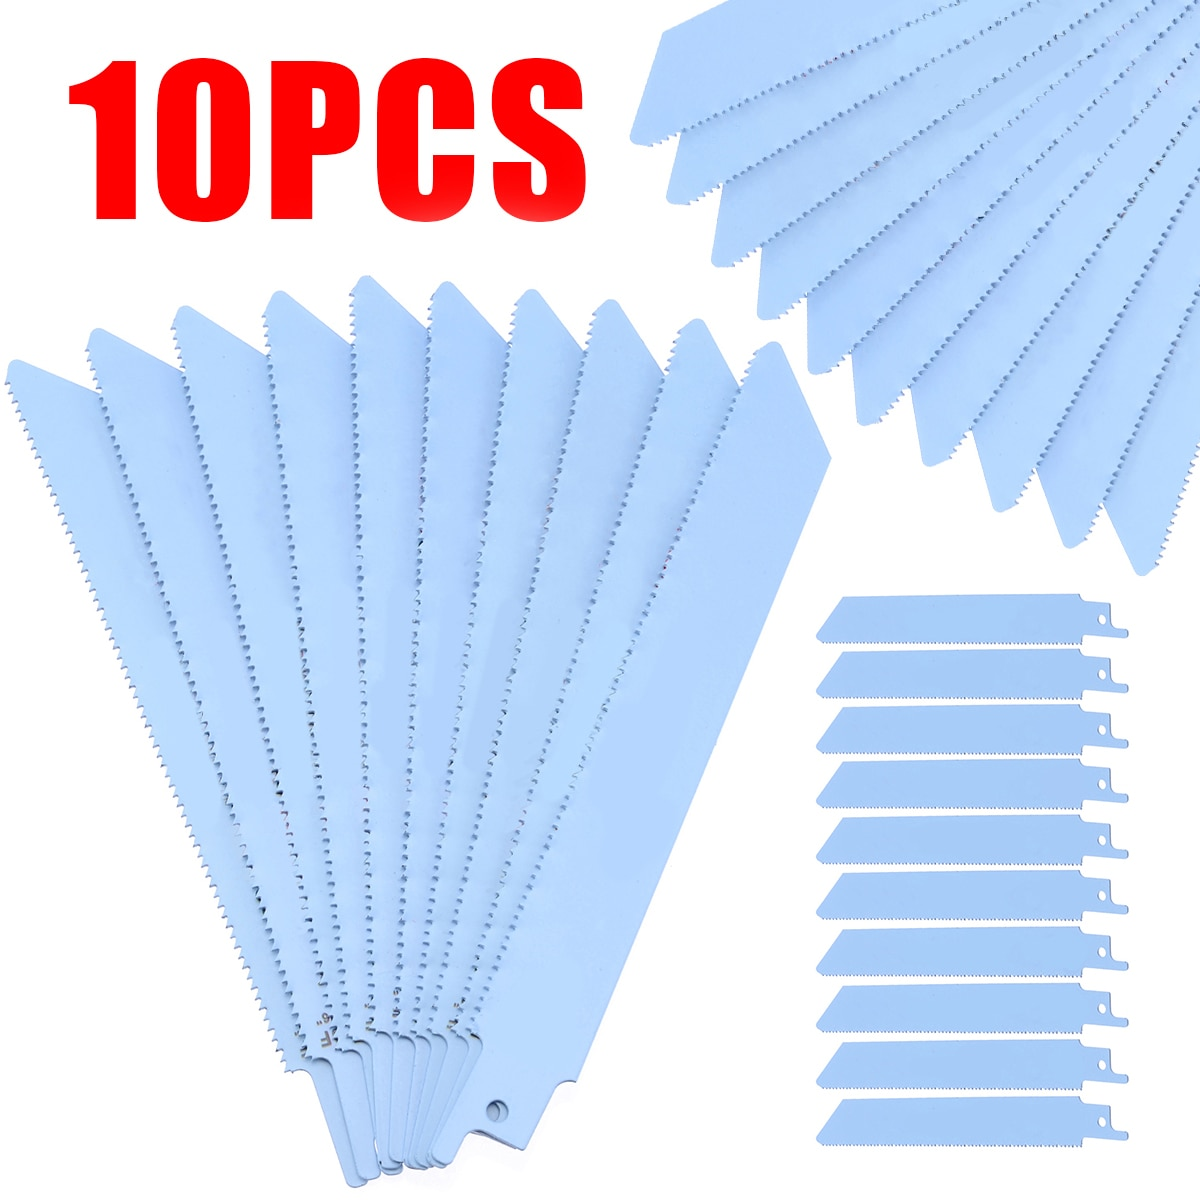 10pcs 150mm 6 Reciprocating Sabre Saw Blades Blue High Quality S922BF Saw Blades for Metal Cutting